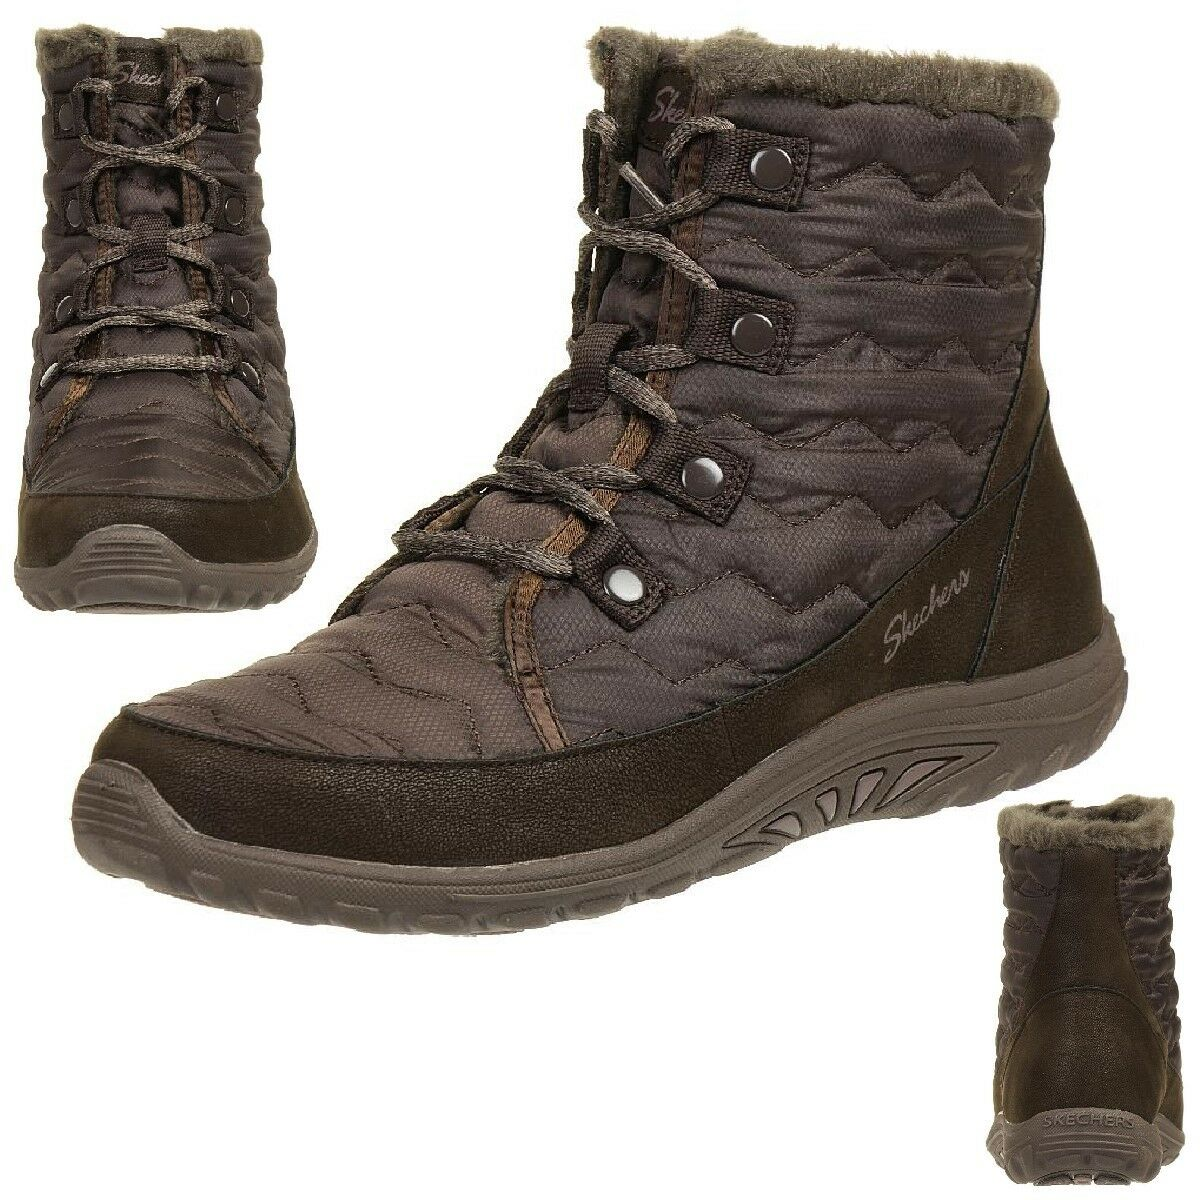 skechers reggae fest vector stiefel damen winterschuhe gef ttert choc eur 49 95 picclick de. Black Bedroom Furniture Sets. Home Design Ideas